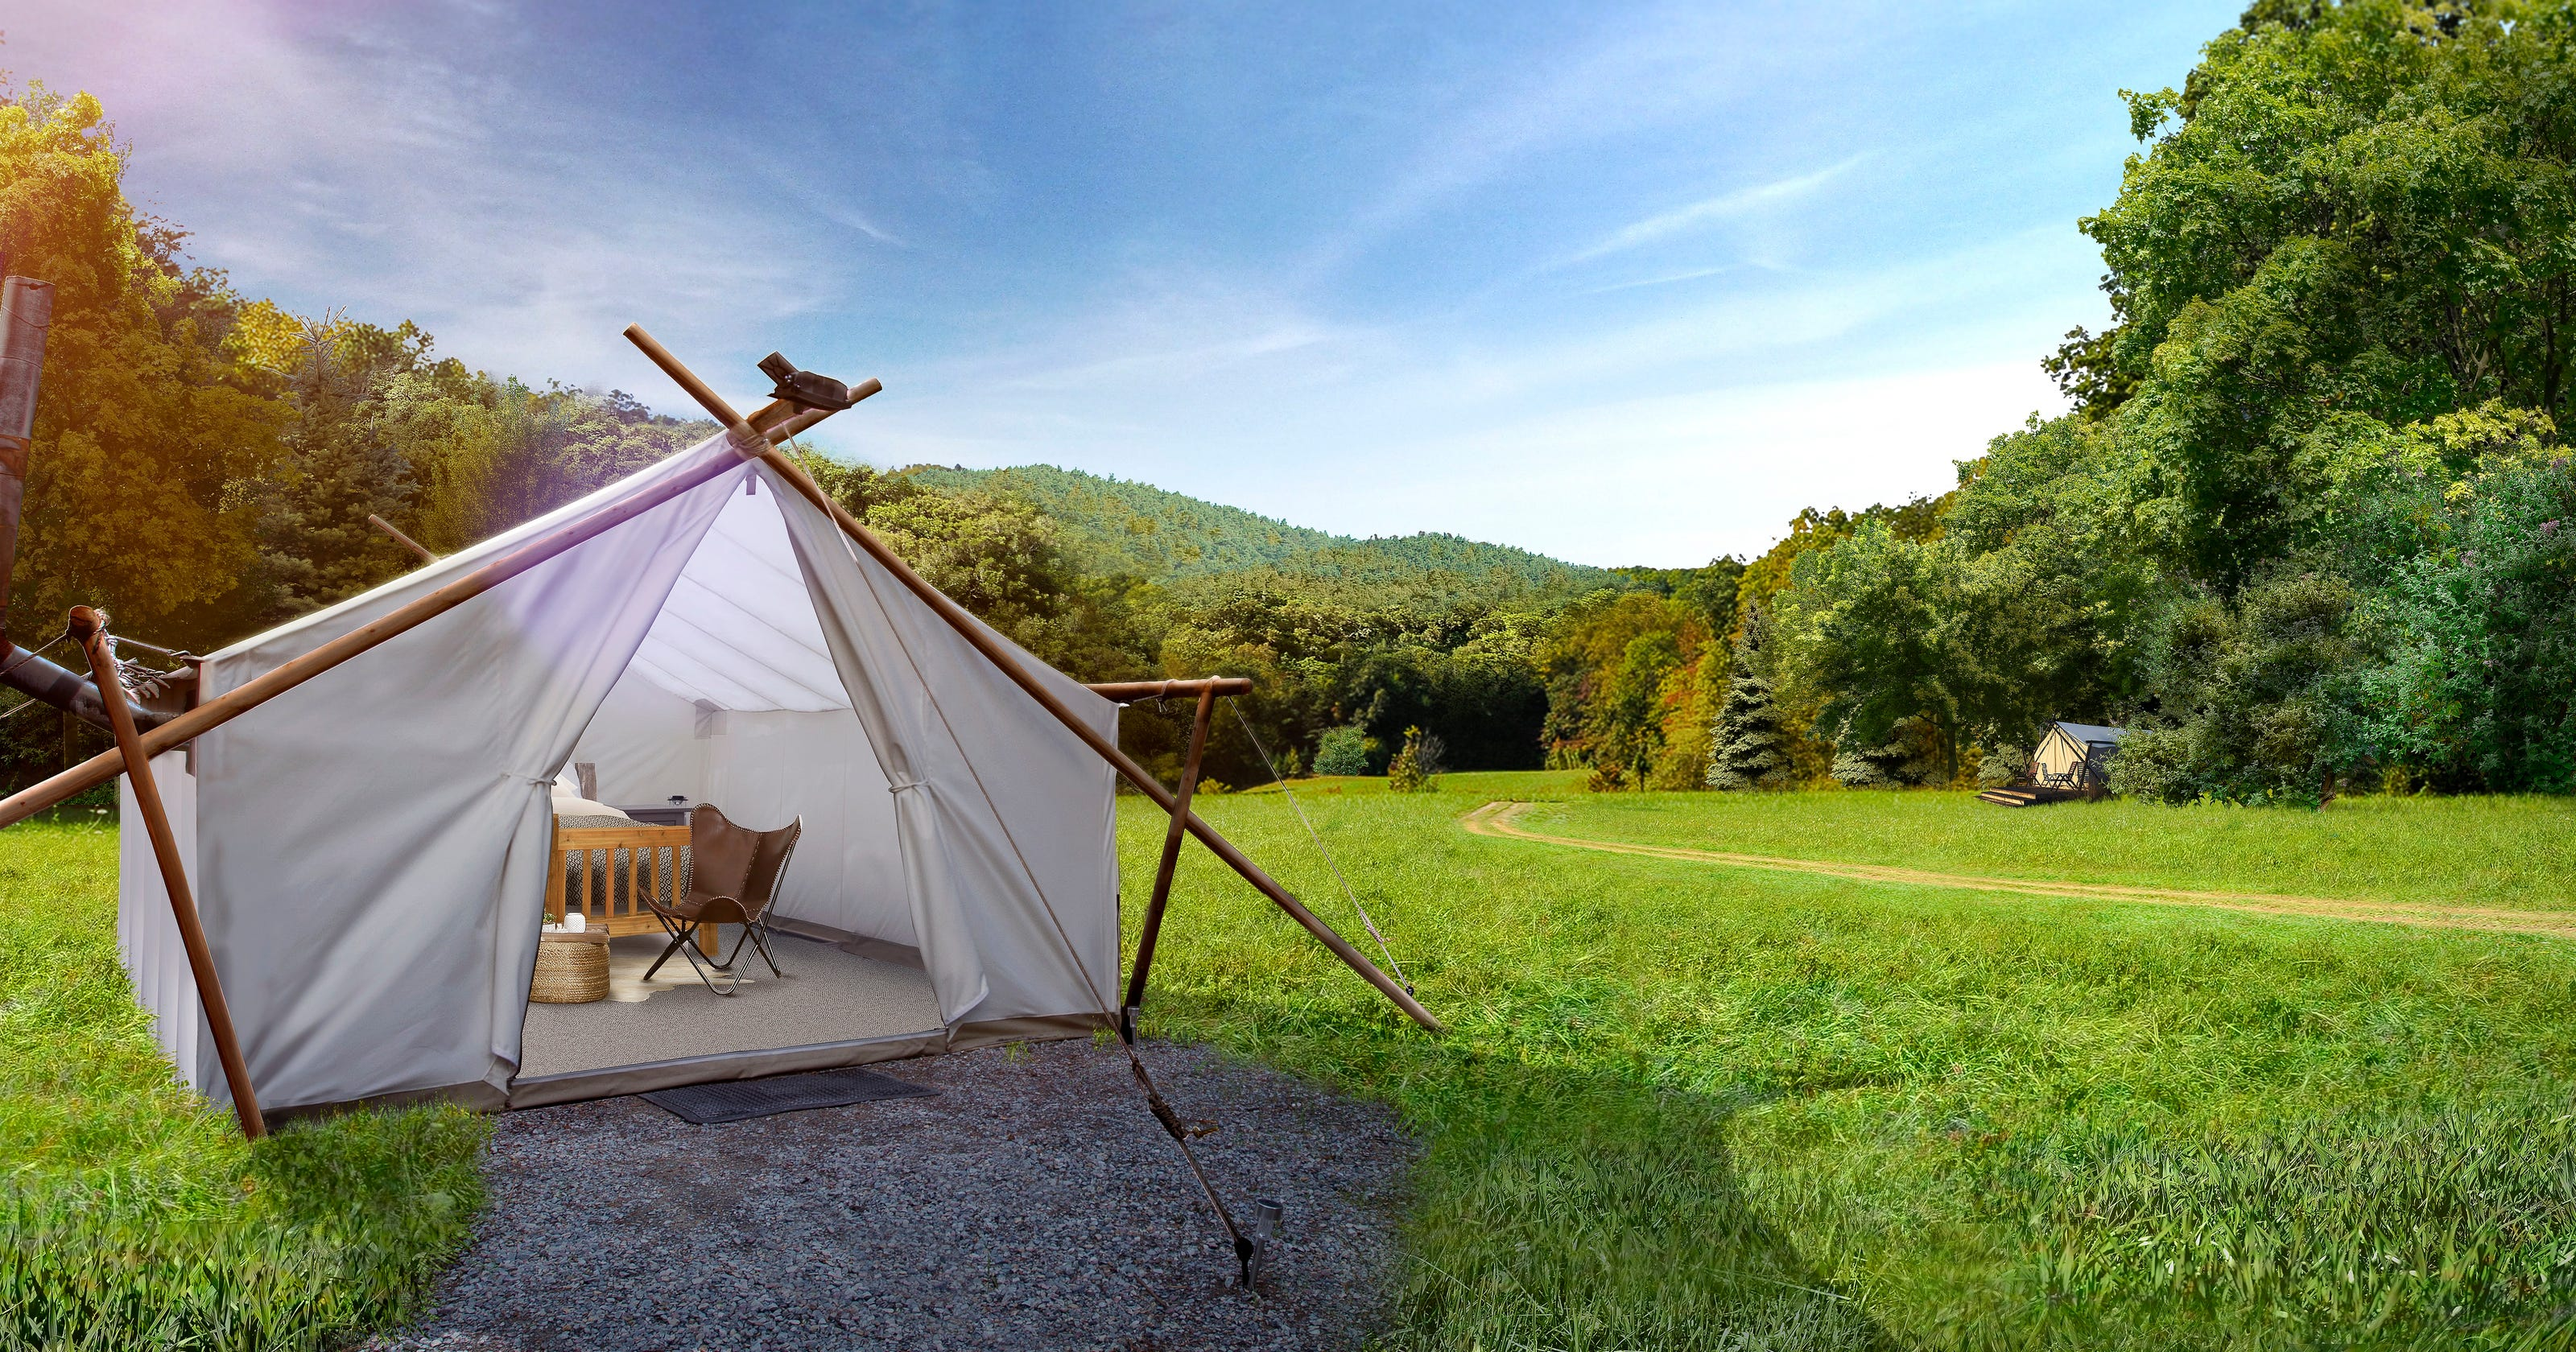 separation shoes 97603 1fbbf Glamping in Tennessee: Gatlinburg Under Canvas luxury tents